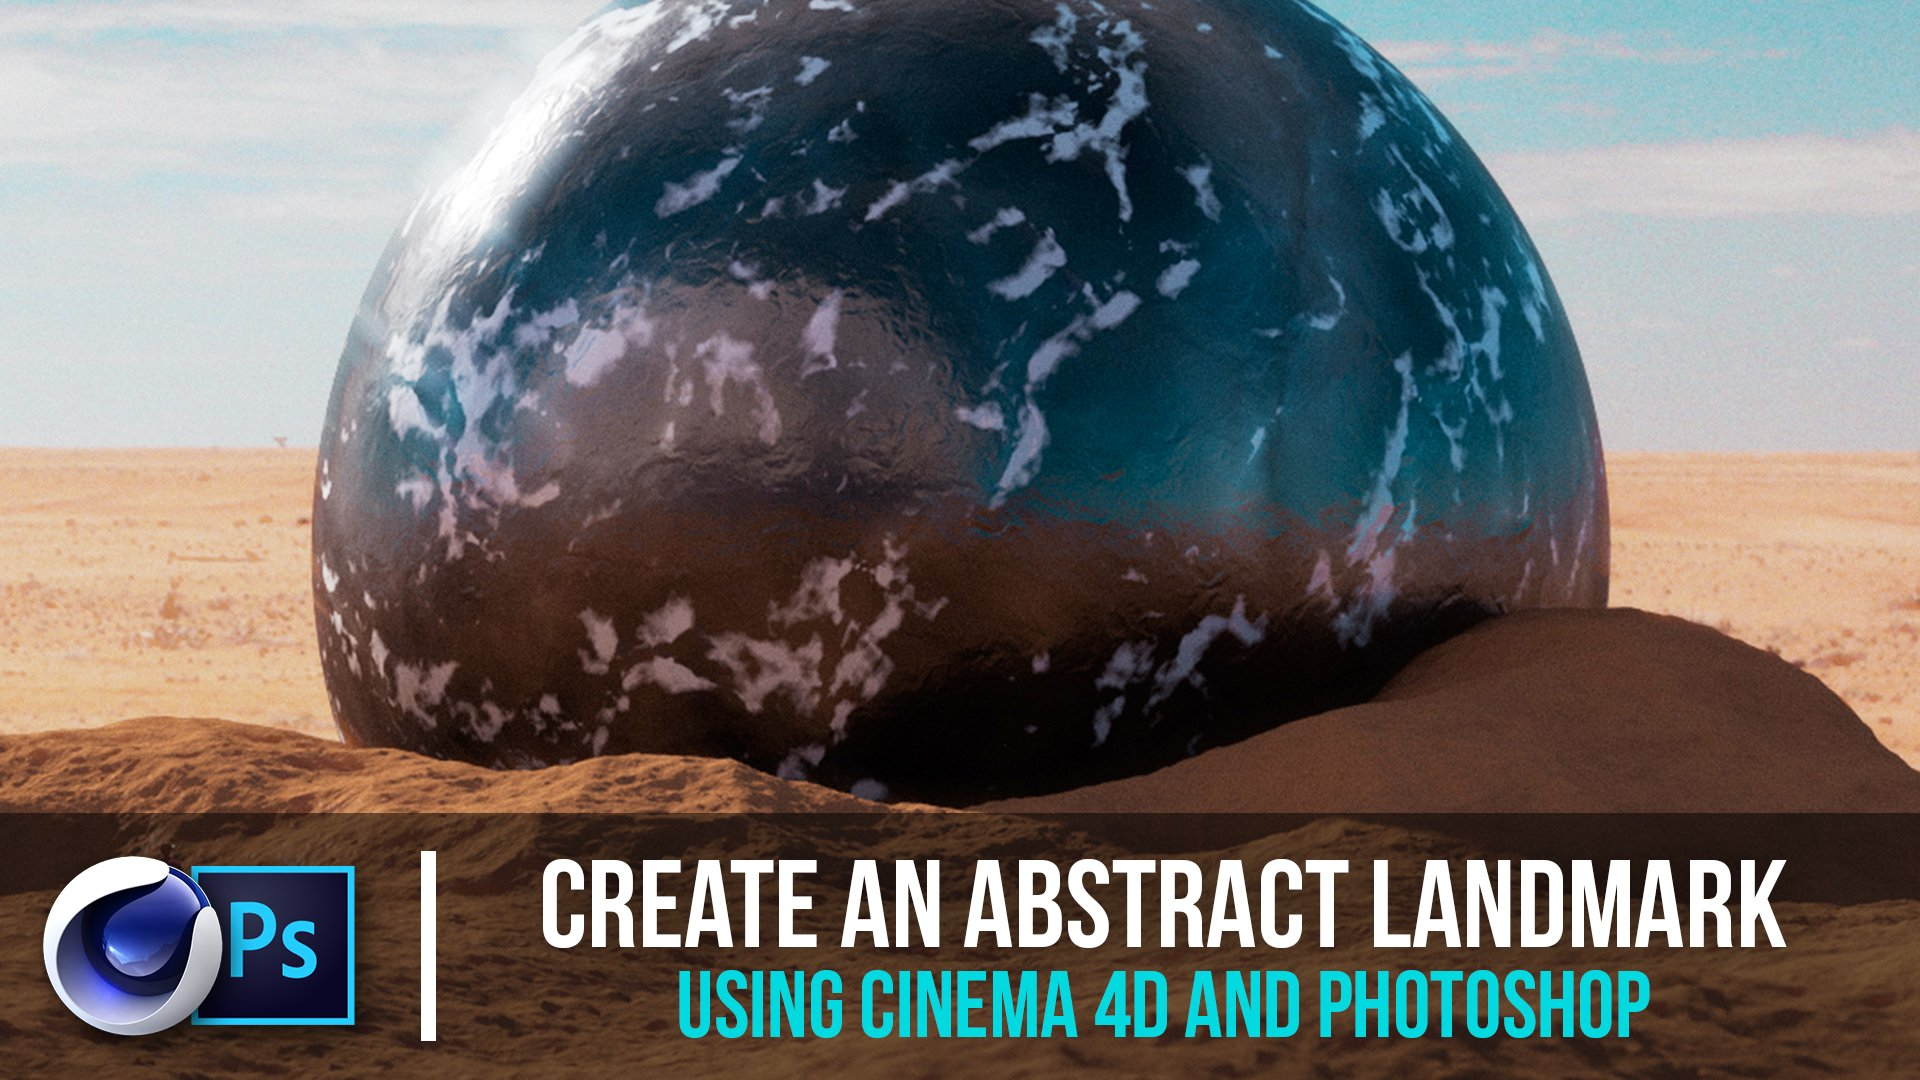 Create an Abstract Landmark Using Cinema 4D and Photoshop